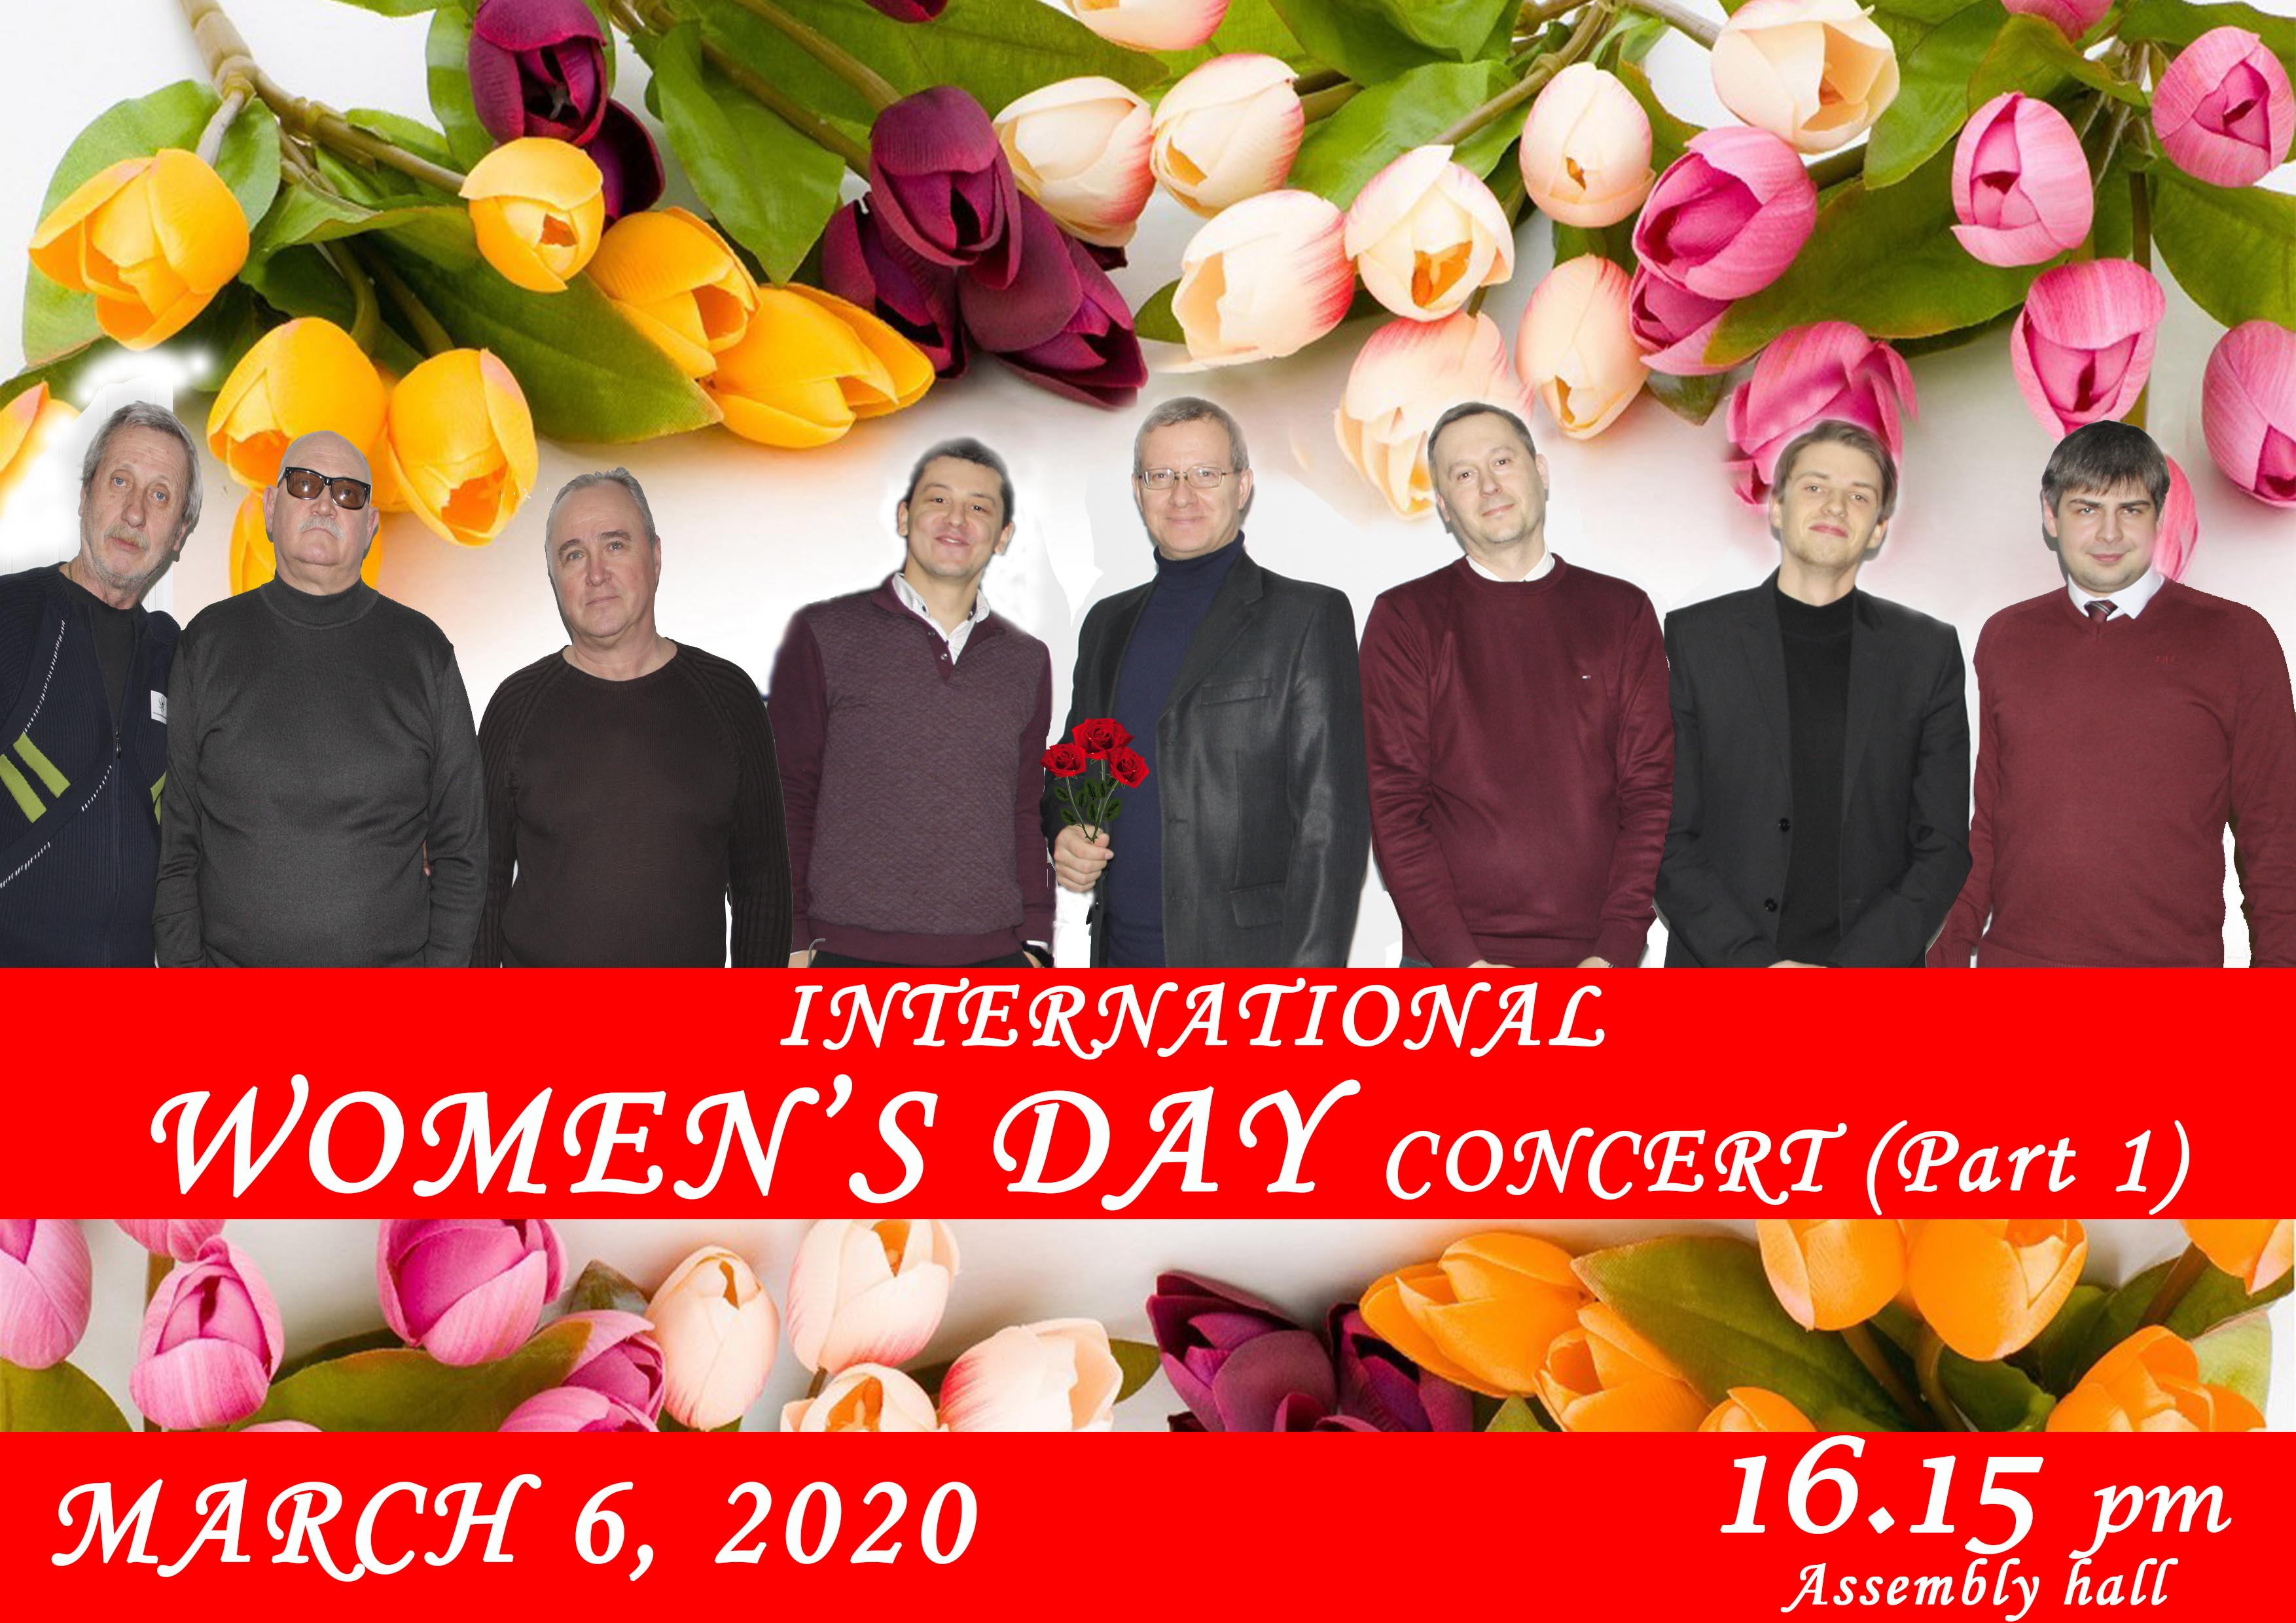 International Women's day concert (Part 1)